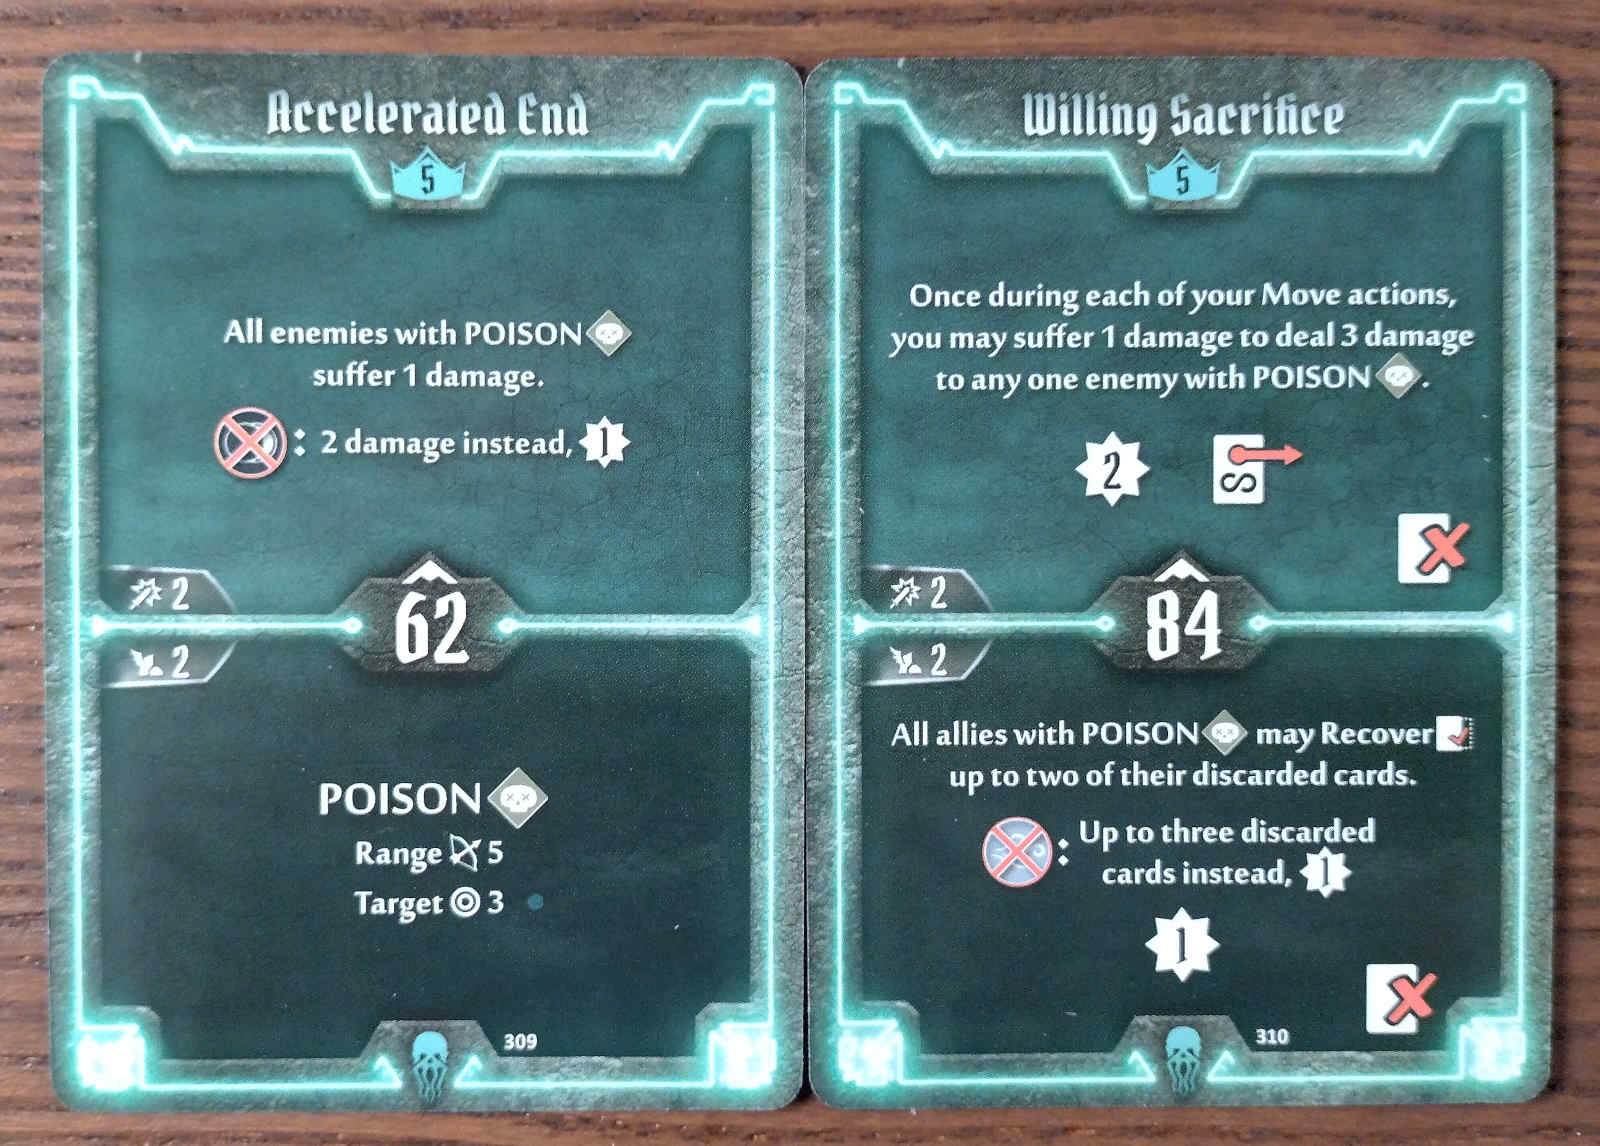 Level 5 Plagueherald cards - Accelerated End and Willing Sacrifice